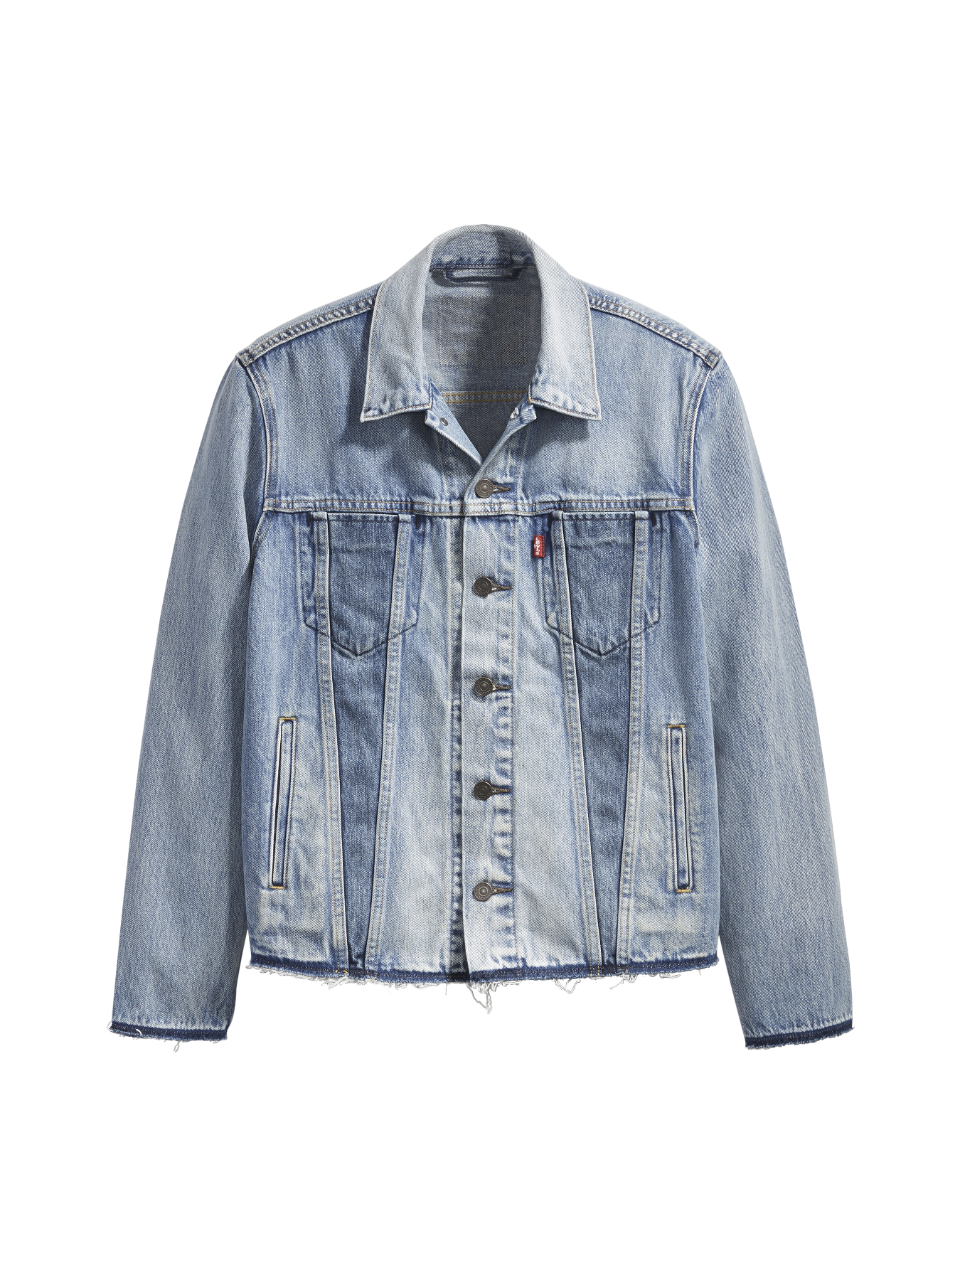 Altered Trucker Jacket